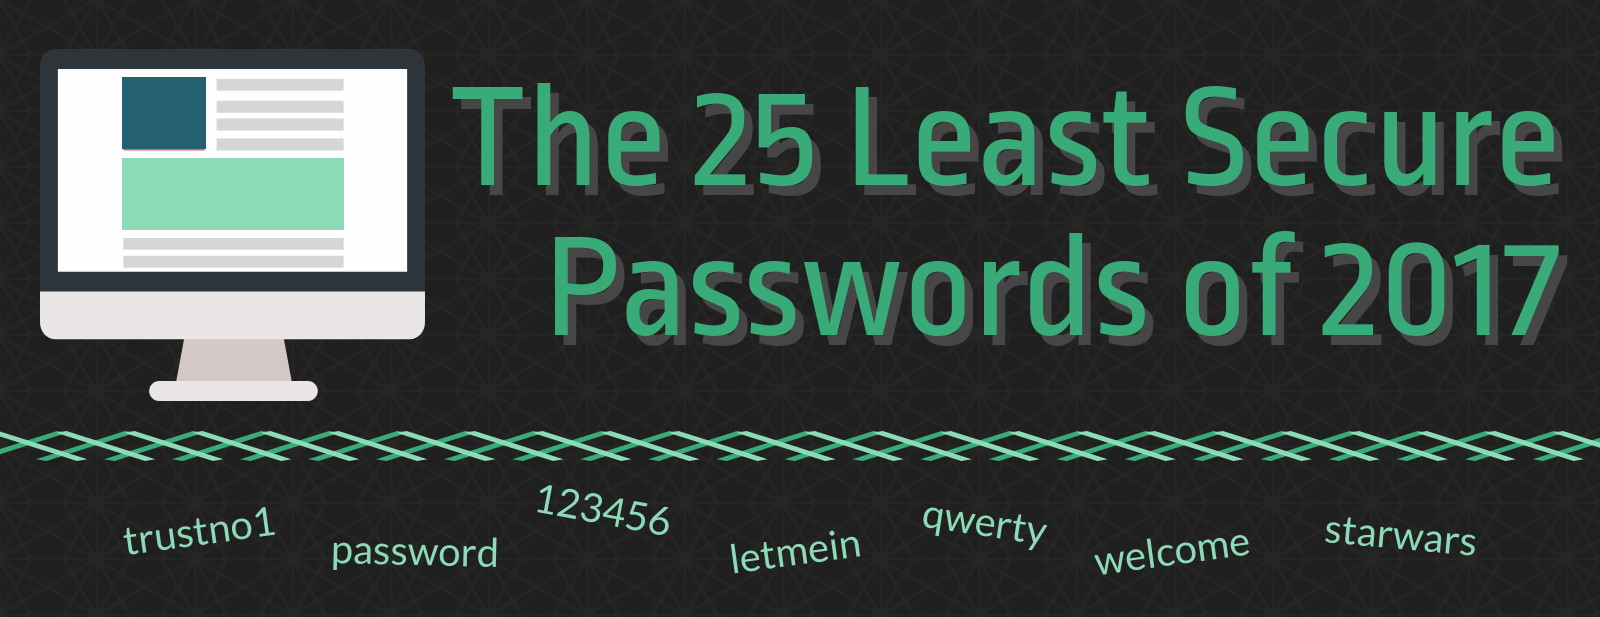 The Least Secure Passwords of 2017